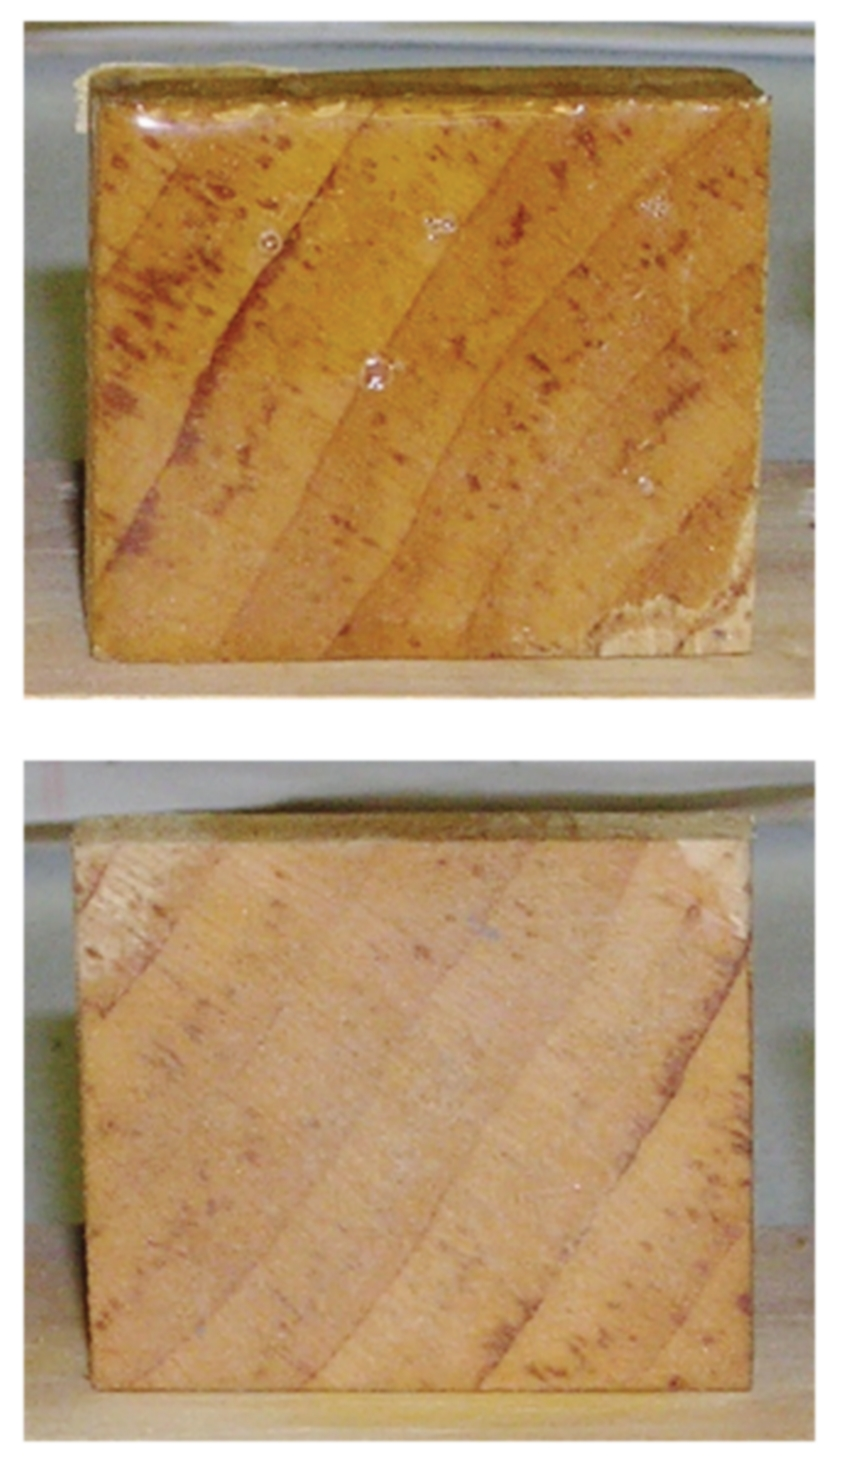 penetrating epoxy sample blocks